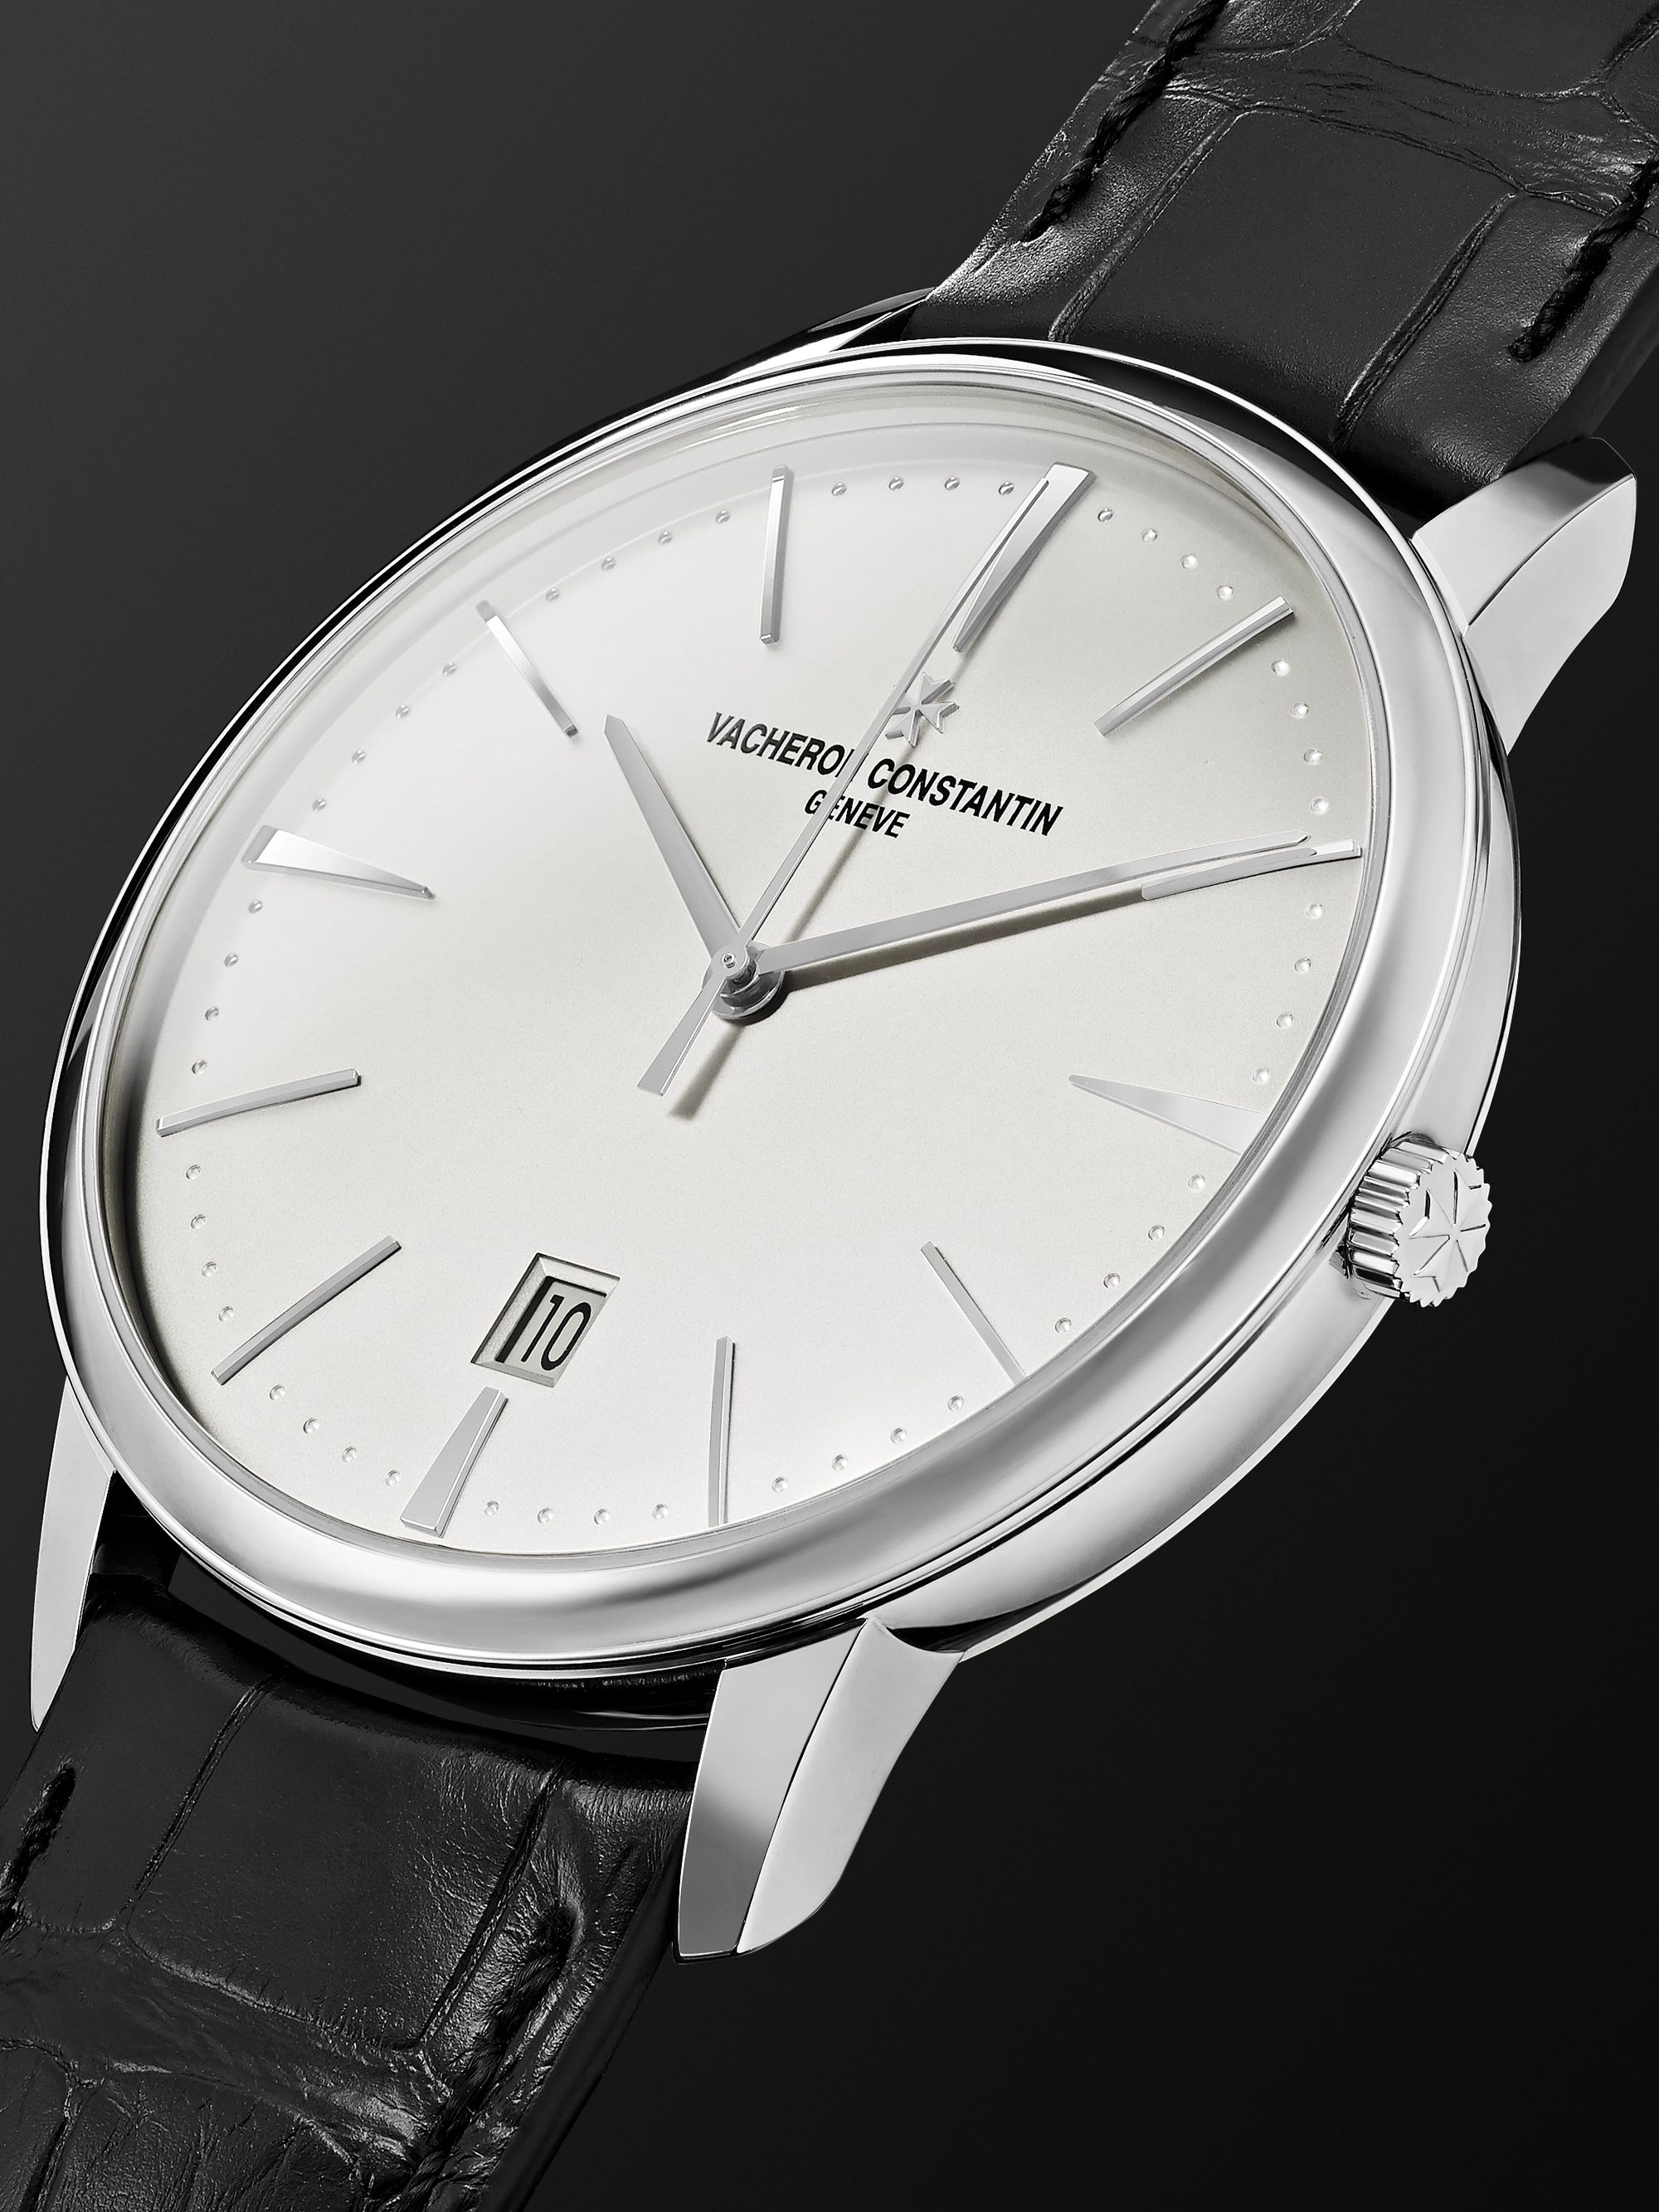 Vacheron Constantin Patrimony Automatic 40mm 18-Karat White Gold and Alligator Watch, Ref. No. 85180/000G-9230